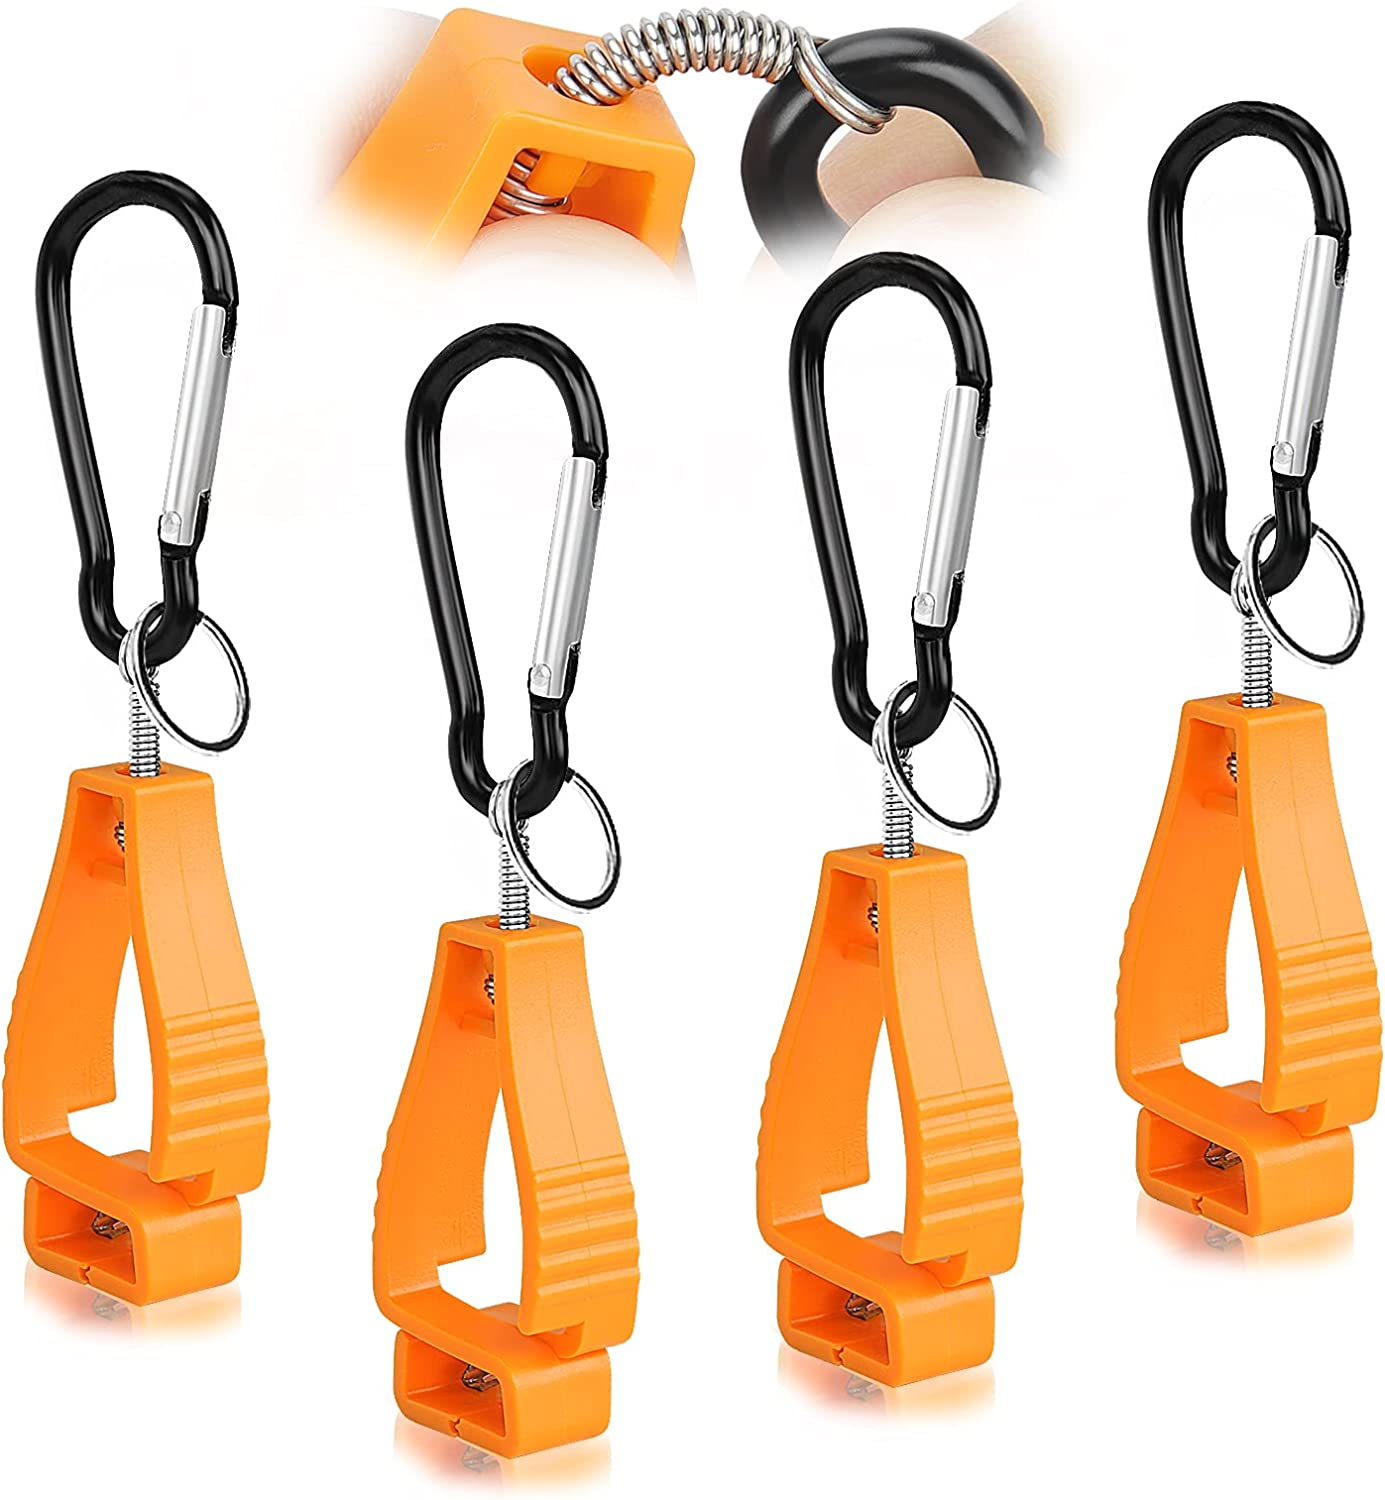 Ranking Outlet sale feature TOP9 4pcs Glove Clips for work glove Holders Ideal clips fo